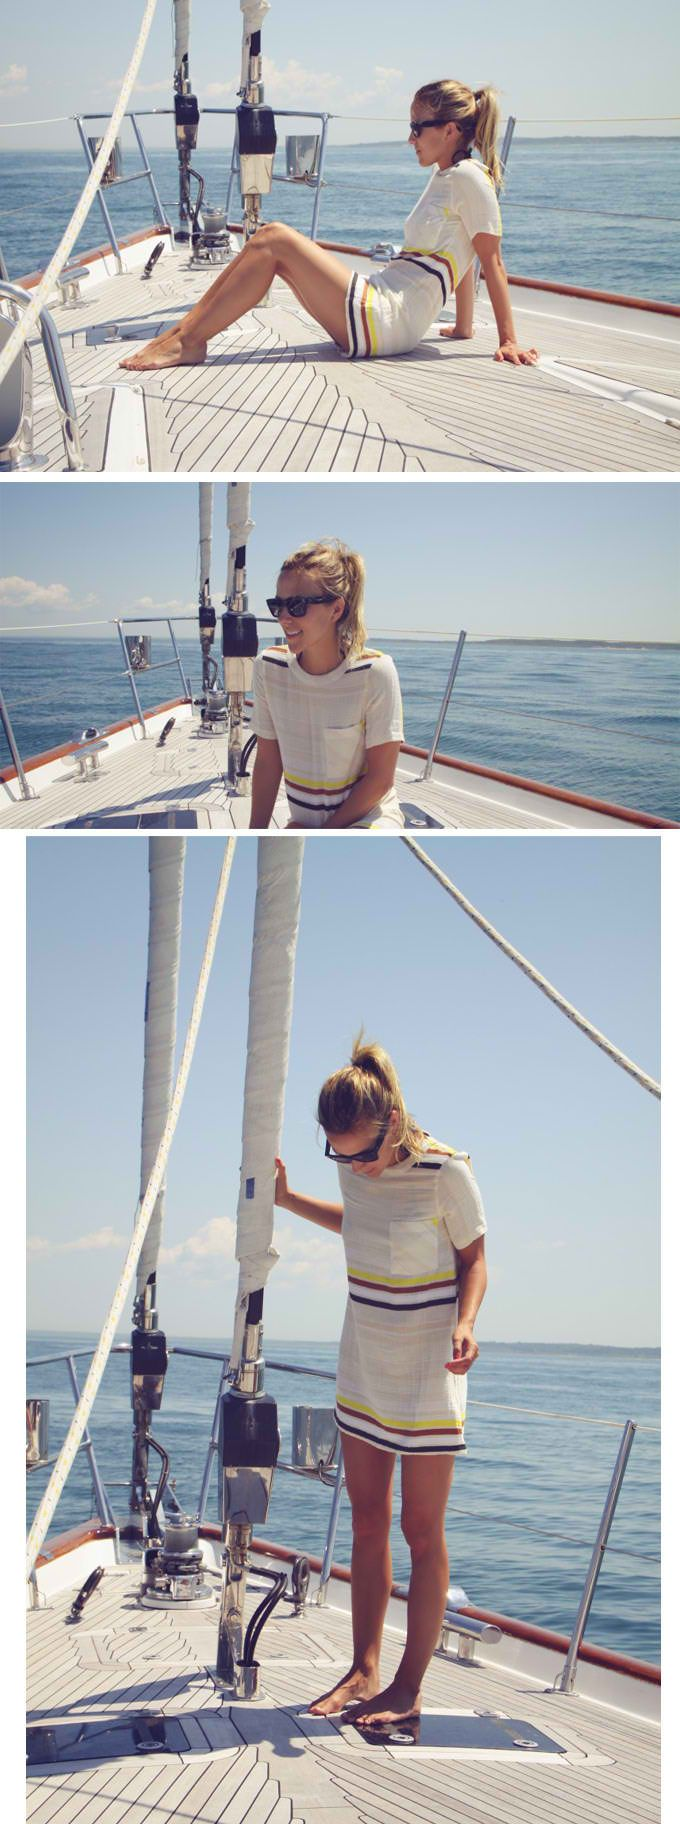 Picturing me on my dads sail boat next summer. Time out - a blonde on a sail boat?!